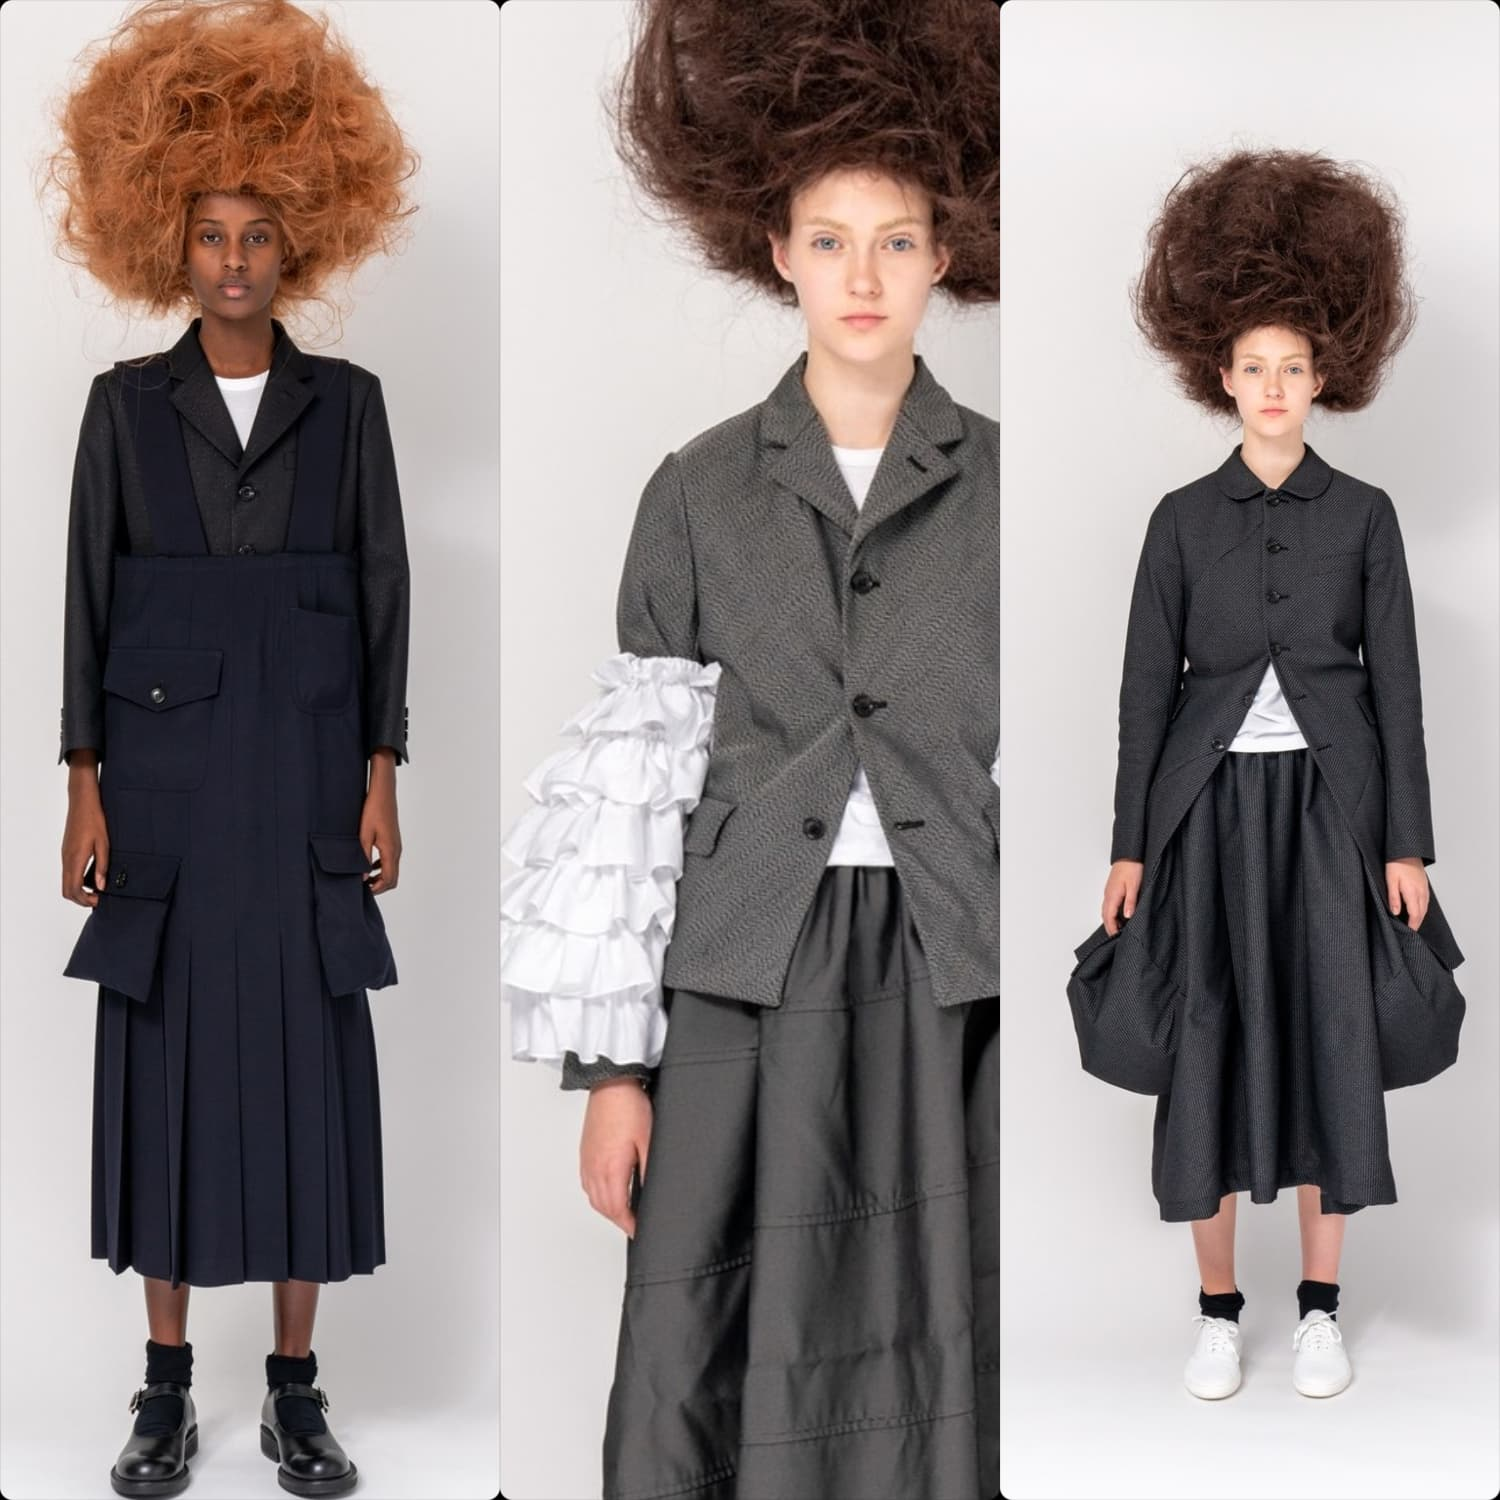 Comme des Garcons Pre-Fall 2020 Paris. RUNWAY MAGAZINE ® Collections. RUNWAY NOW / RUNWAY NEW